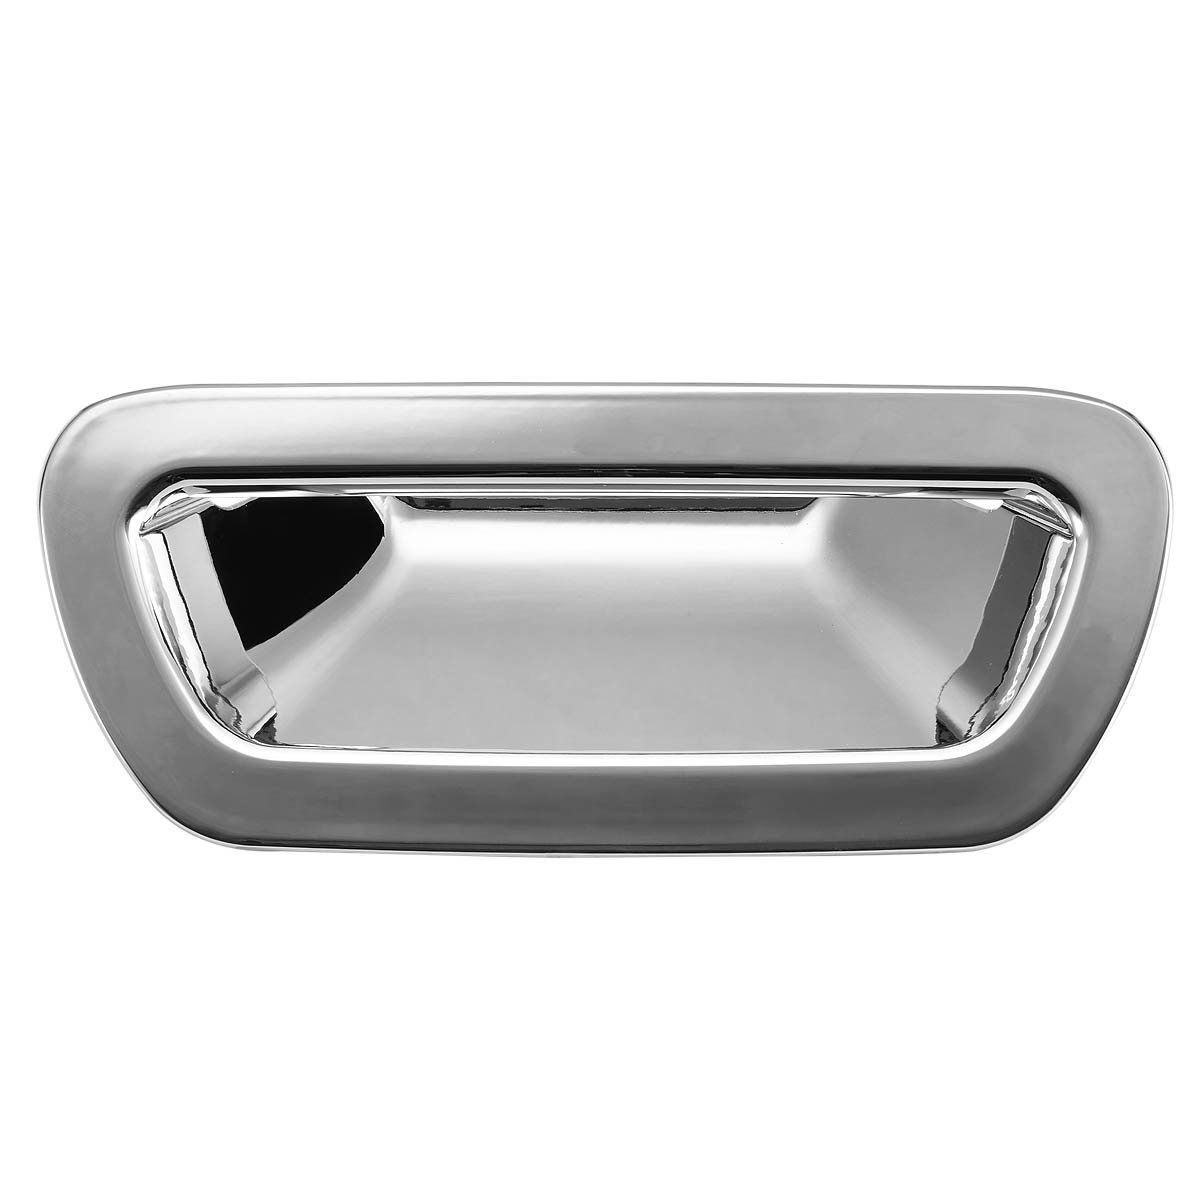 Chrome Plated 4 Door handle+Tailgate cover for 2004-2008 CHRYSLER PACIFICA